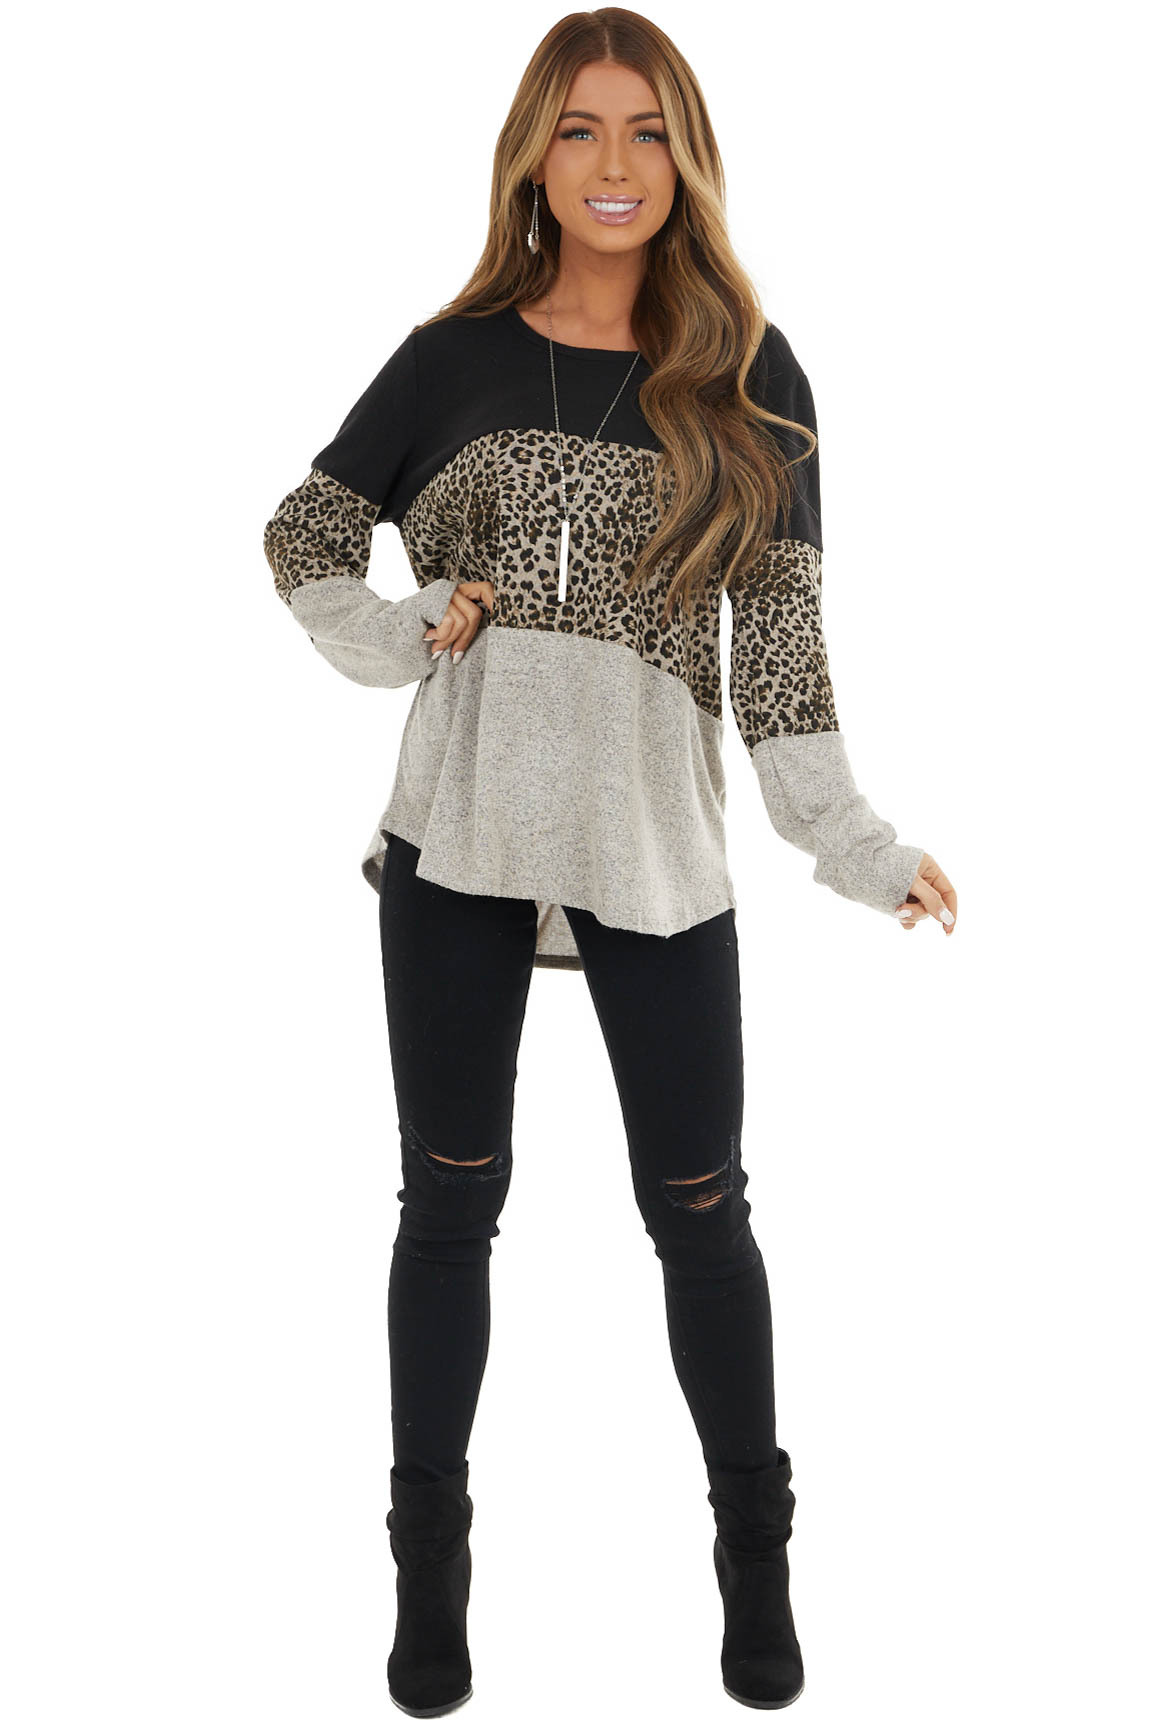 Black and Leopard Print Colorblock Long Sleeve Knit Top